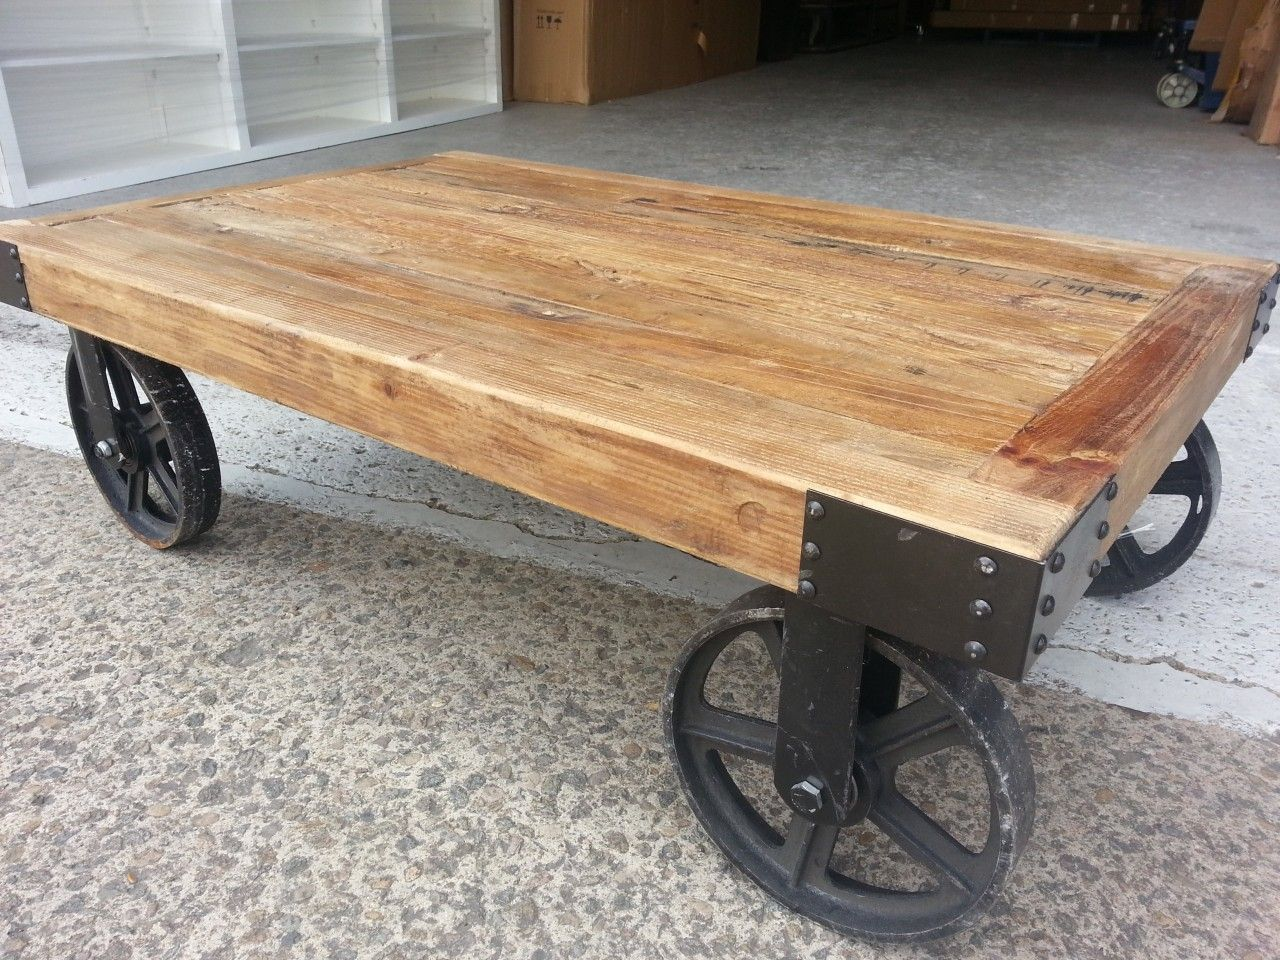 NEW FRENCH PROVINCIAL INDUSTRIAL RECYCLED VINTAGE RUSTIC TIMBER